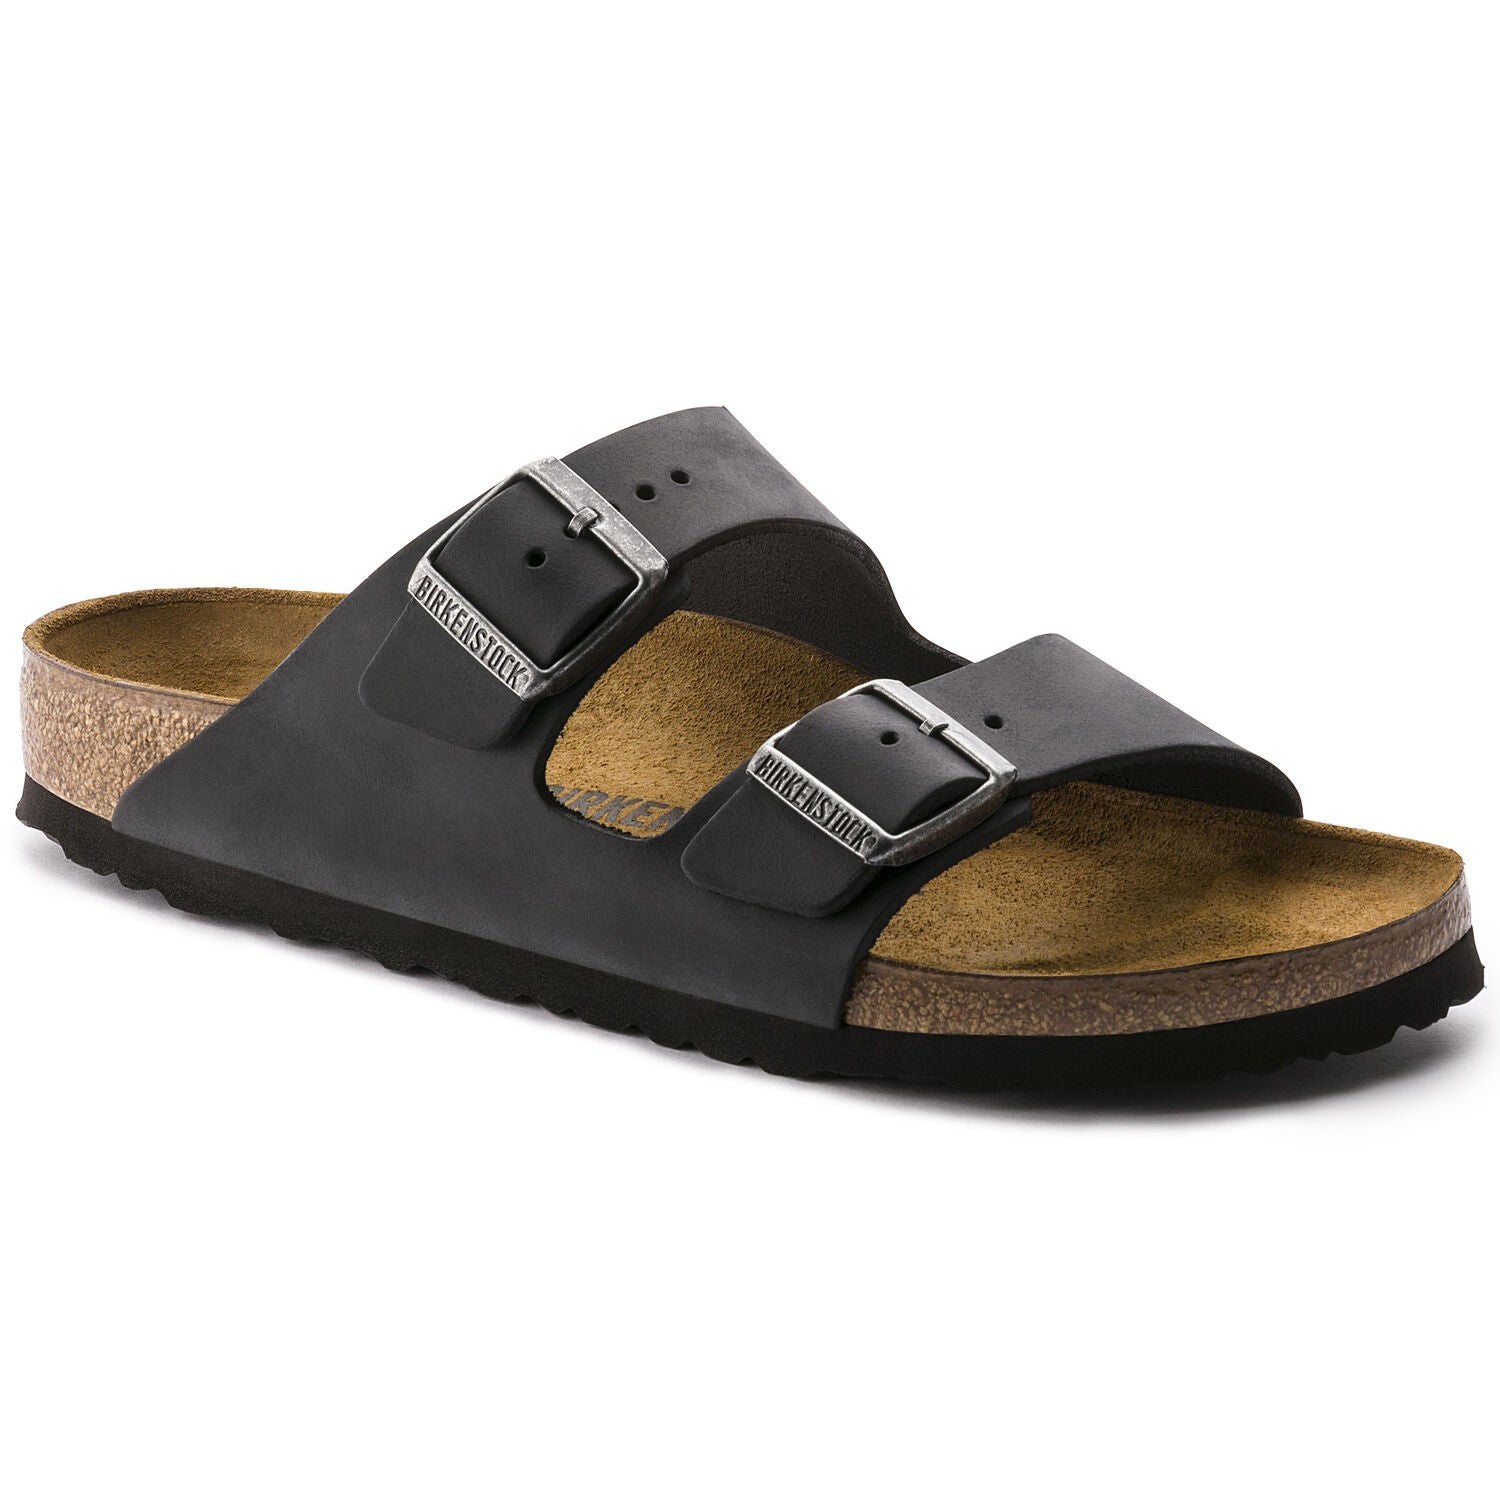 BIRKENSTOCK BIRKENSTOCK ARIZONA BLACK OILED LEATHER NARROW getset-footwear.myshopify.com